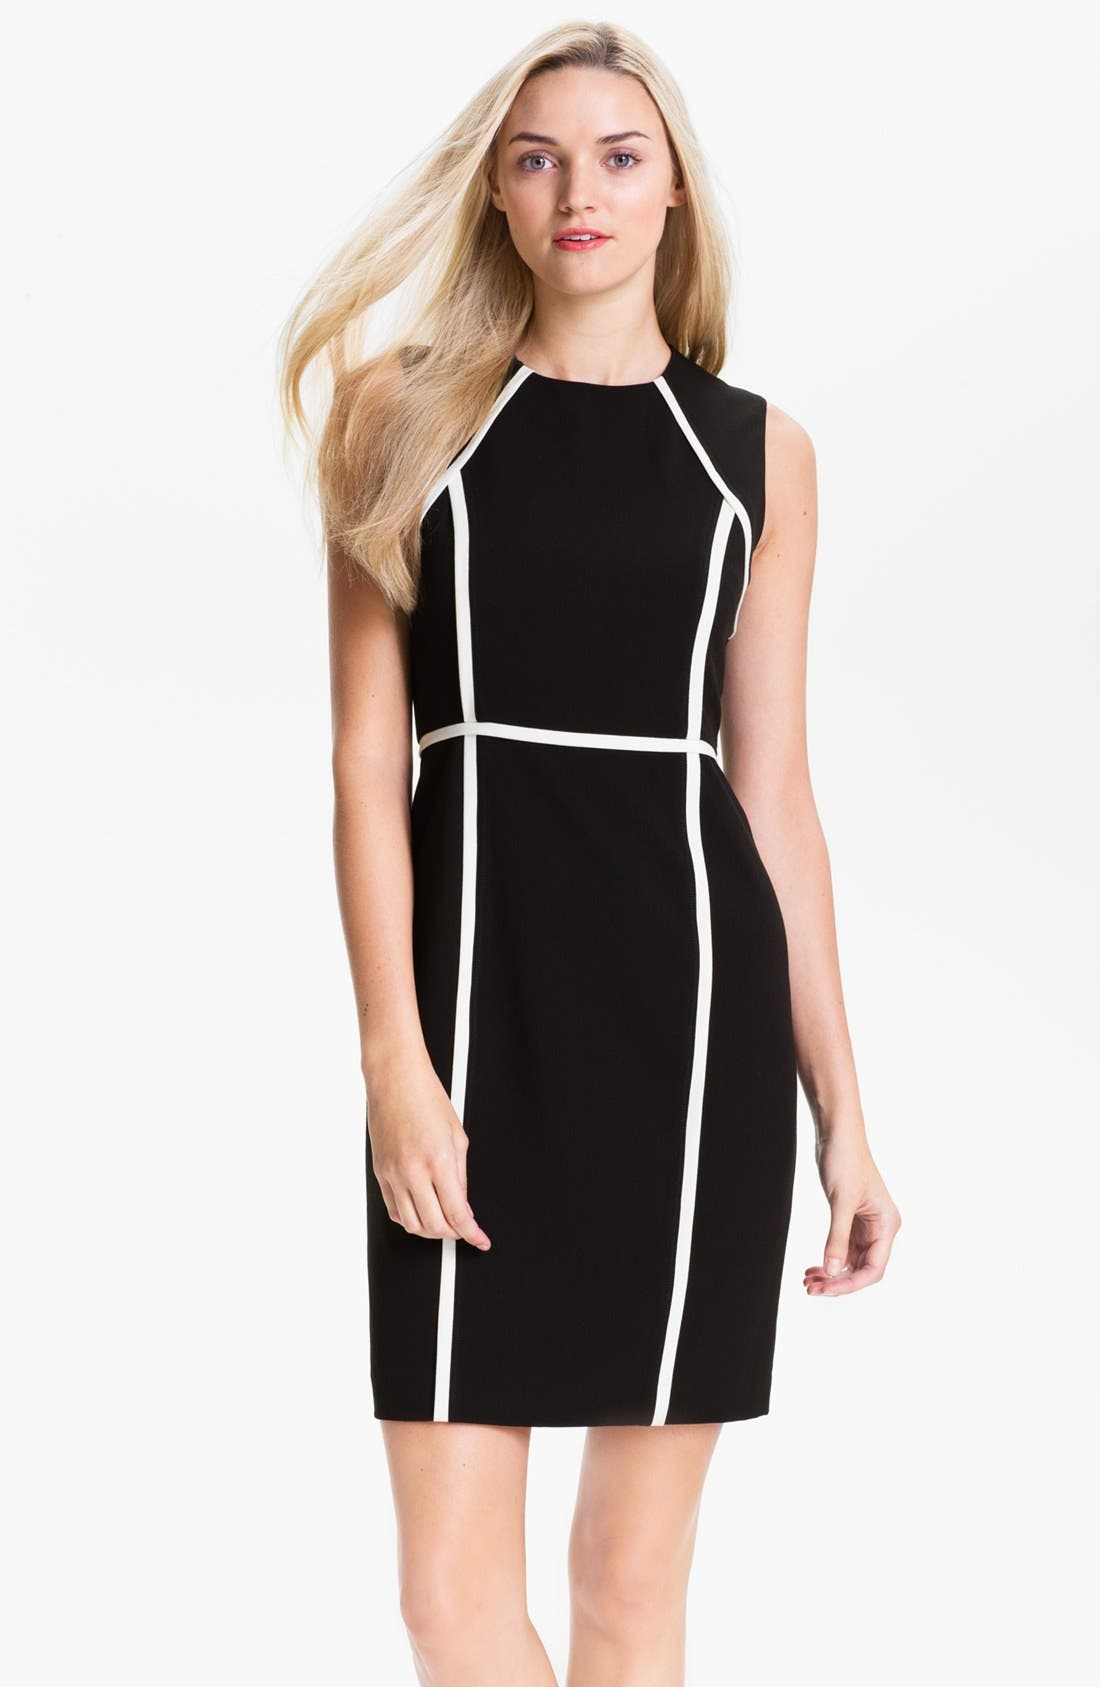 Alternate Image 1 Selected - Calvin Klein Contrast Trim Sheath Dress (Petite)